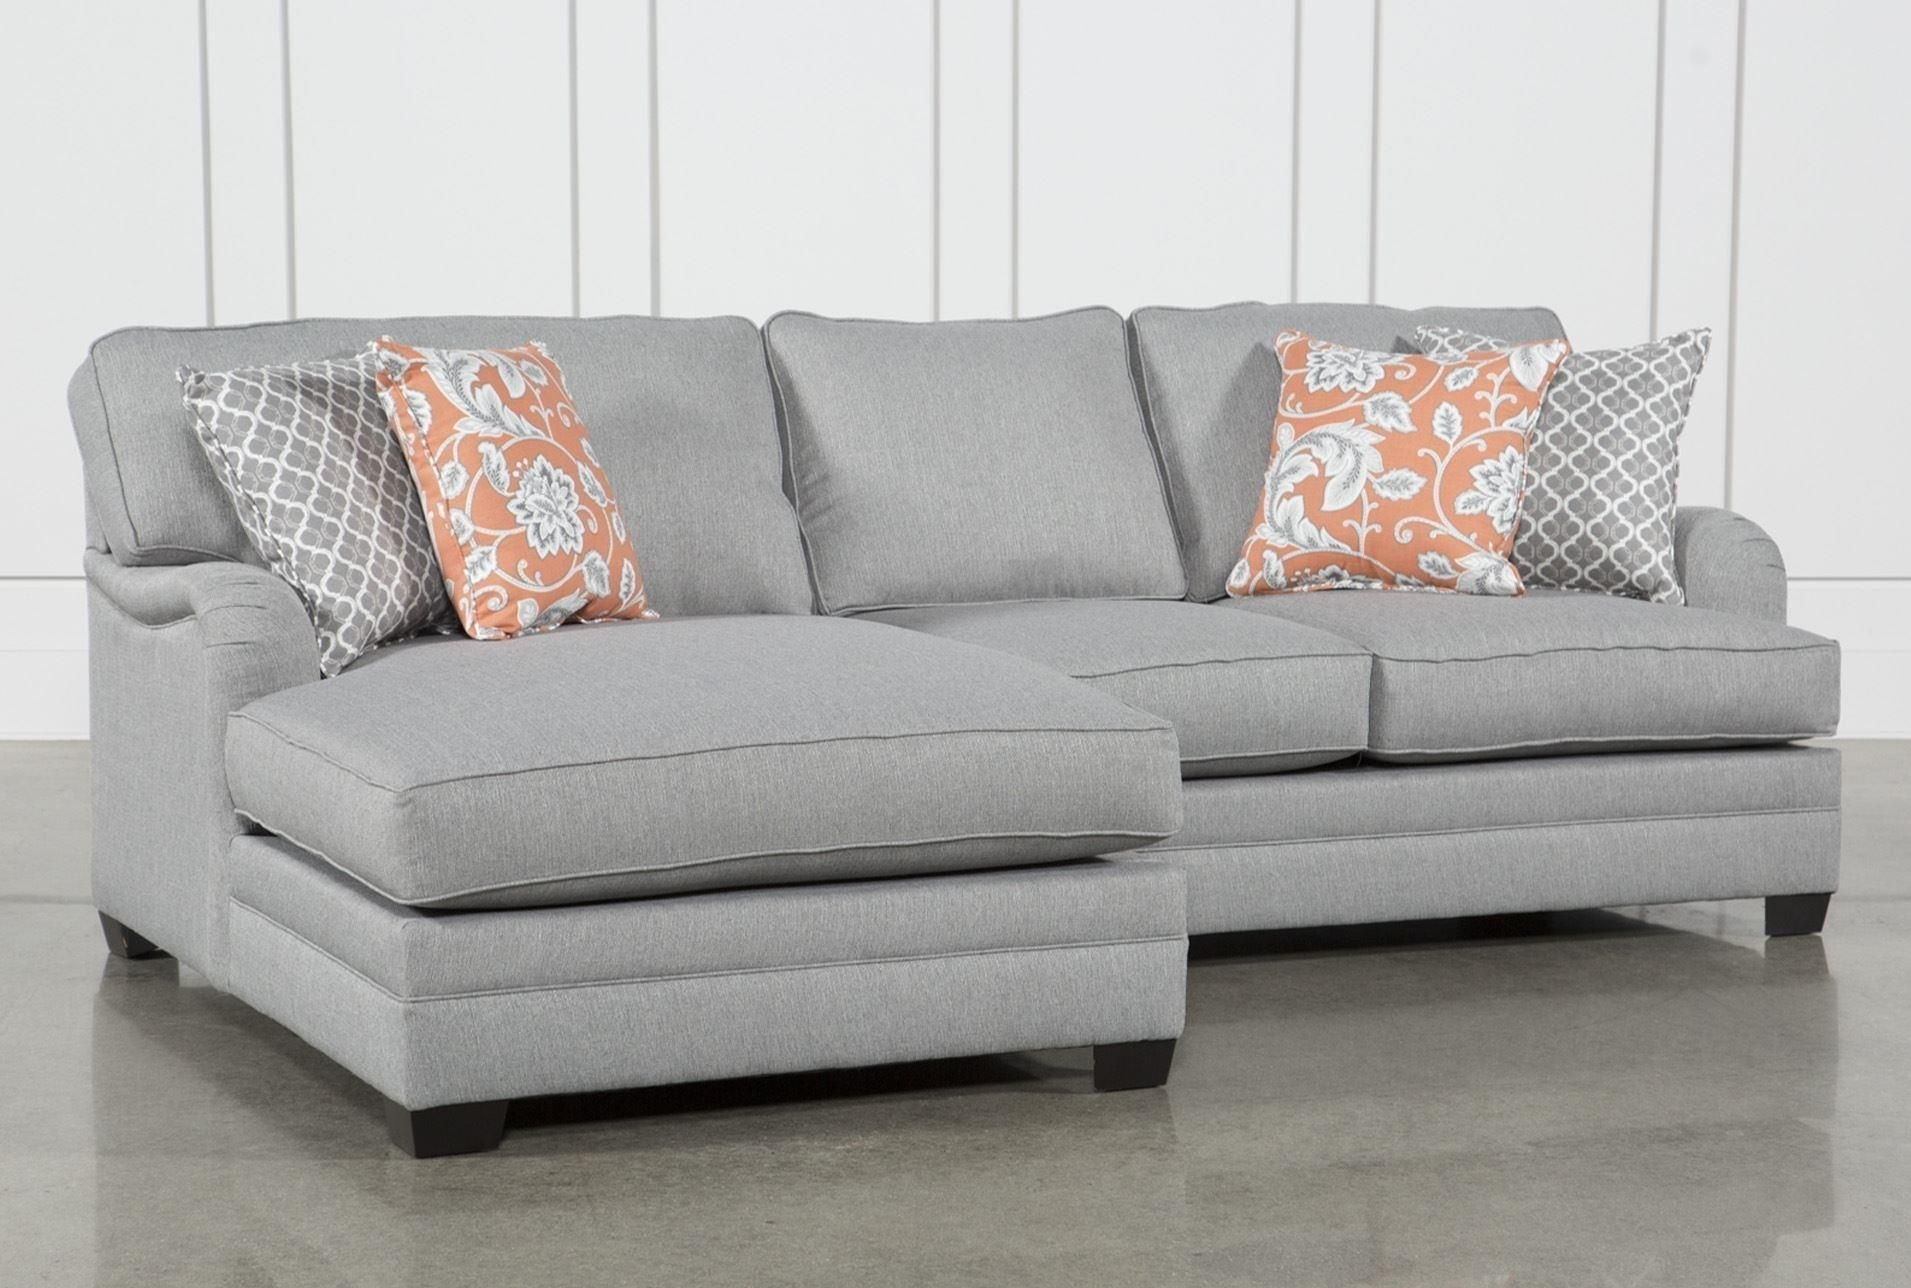 Marissa 2 Piece Sectional W/laf Chaise, Grey, Sofas throughout Mcculla Sofa Sectionals With Reversible Chaise (Image 17 of 30)